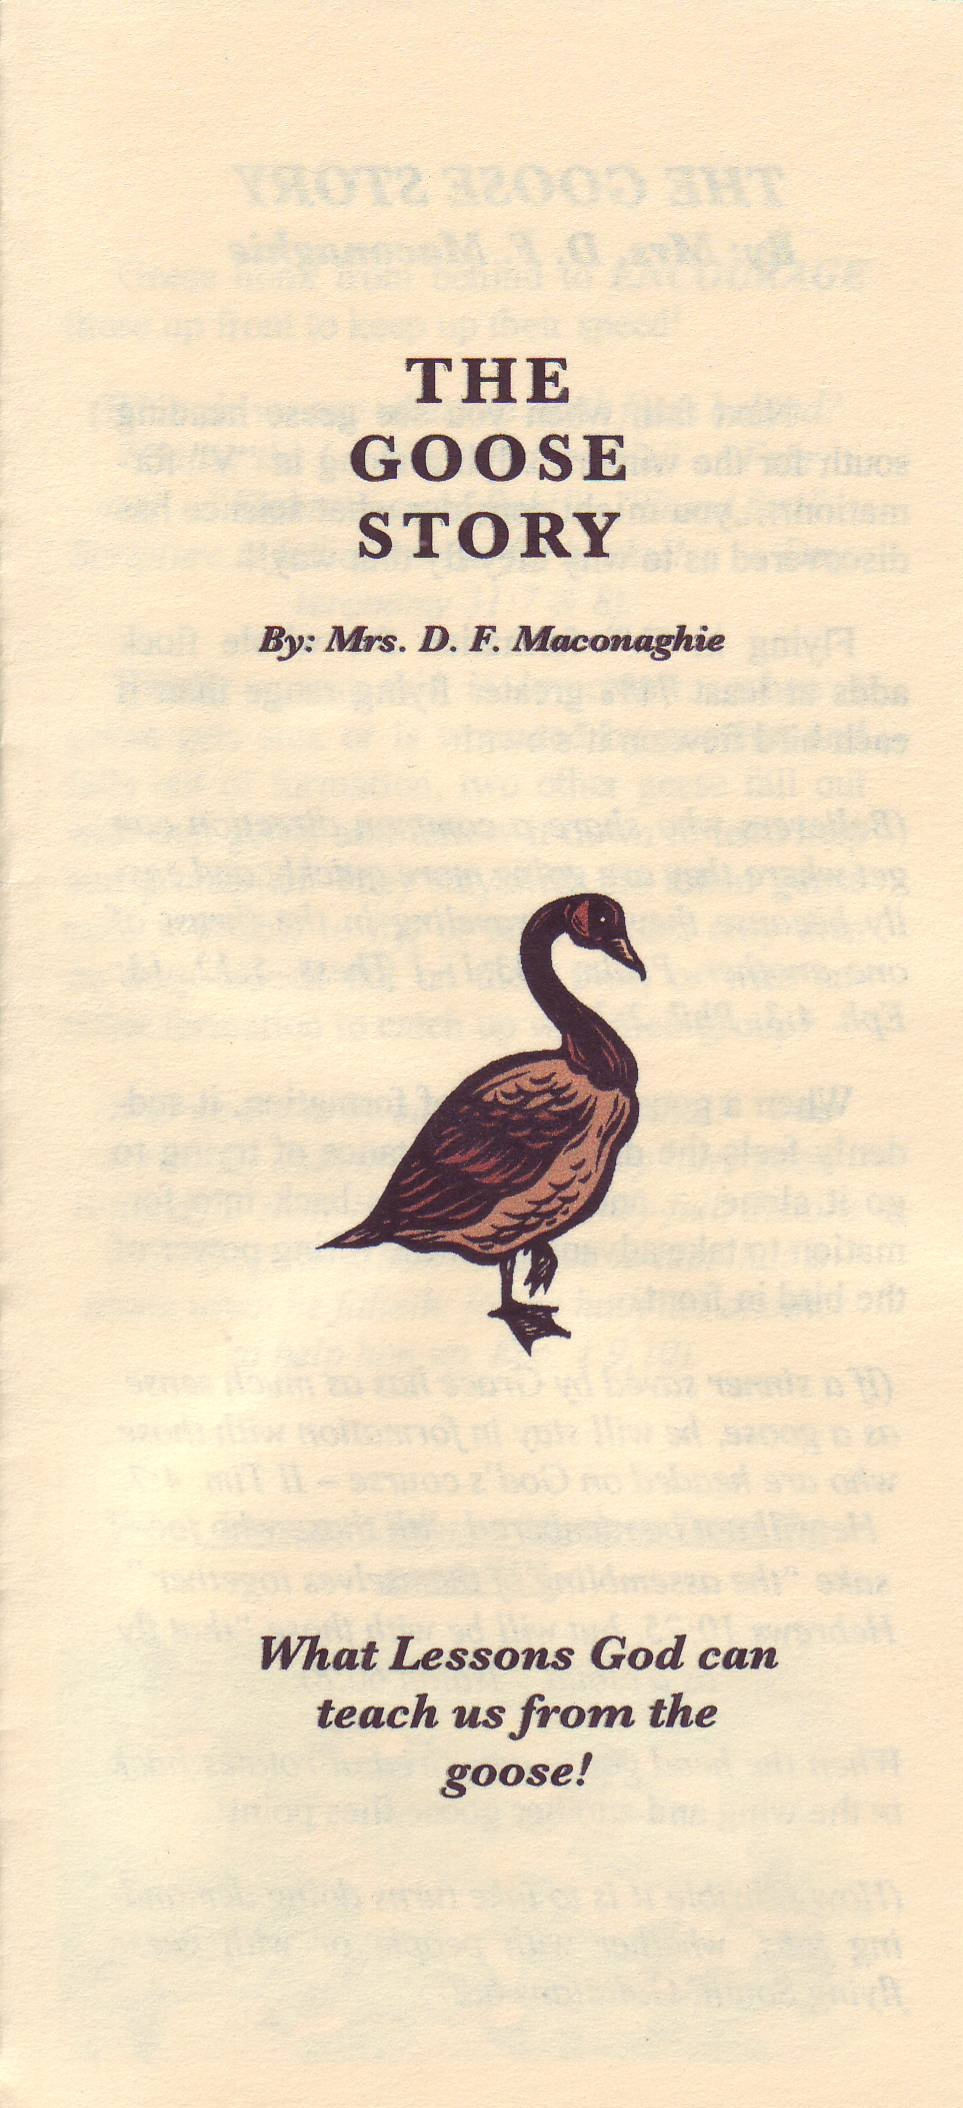 The Goose Story - Mrs. D. F. Maconaghie